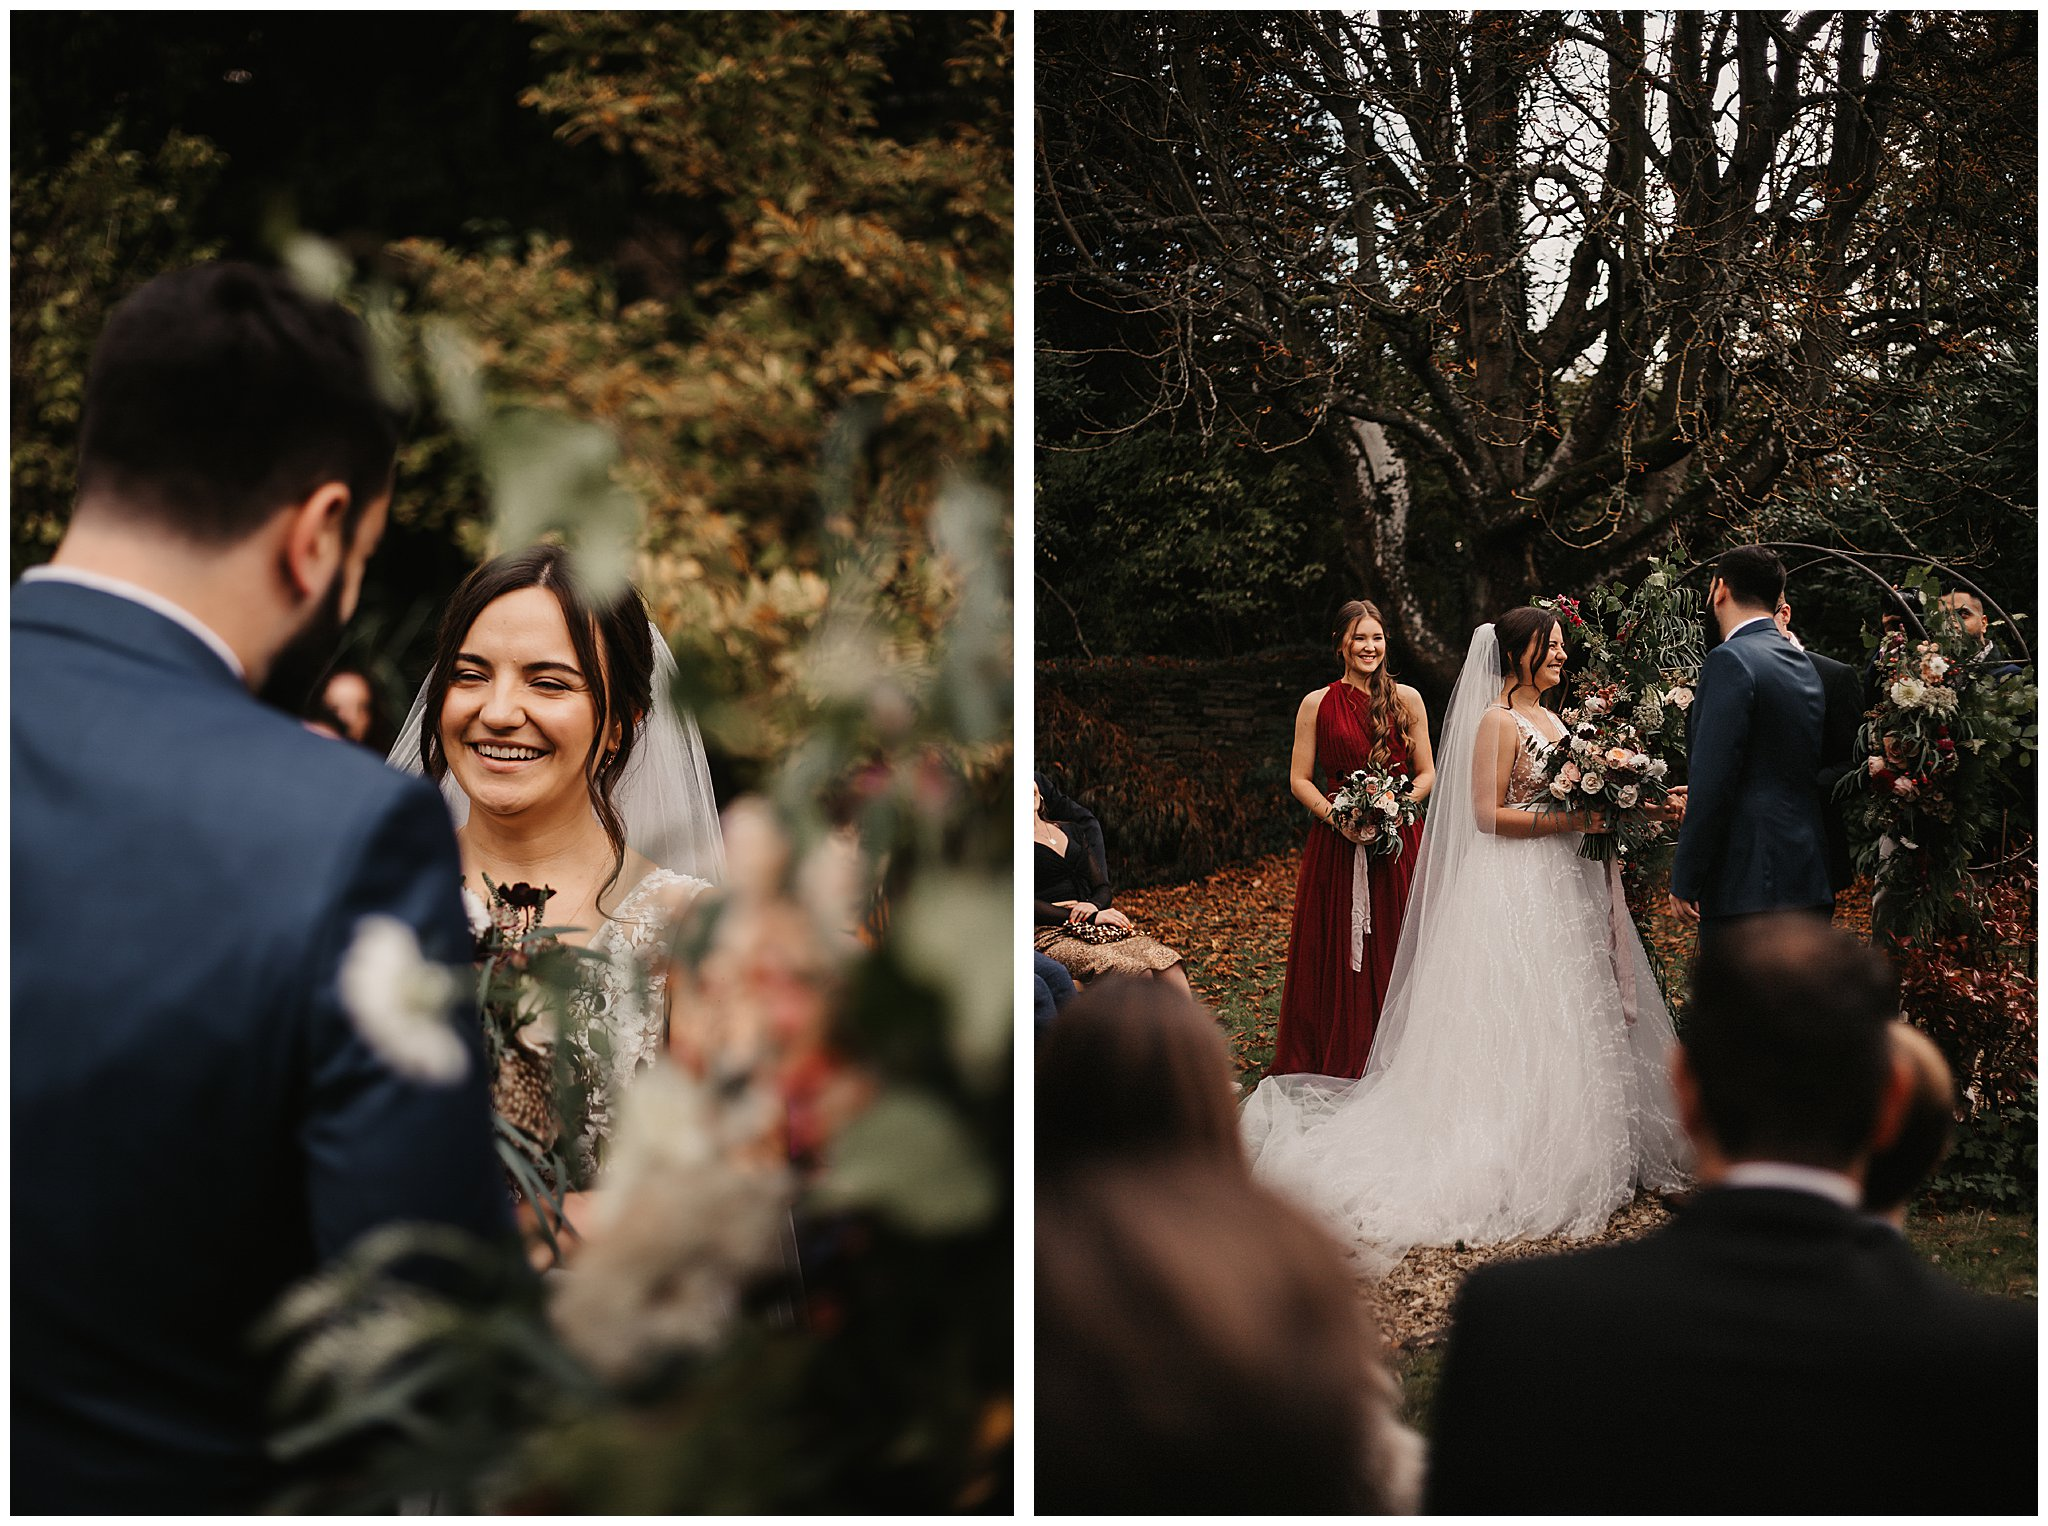 Max & Ksenia Autumnal Wiltshire Wedding-246.jpg